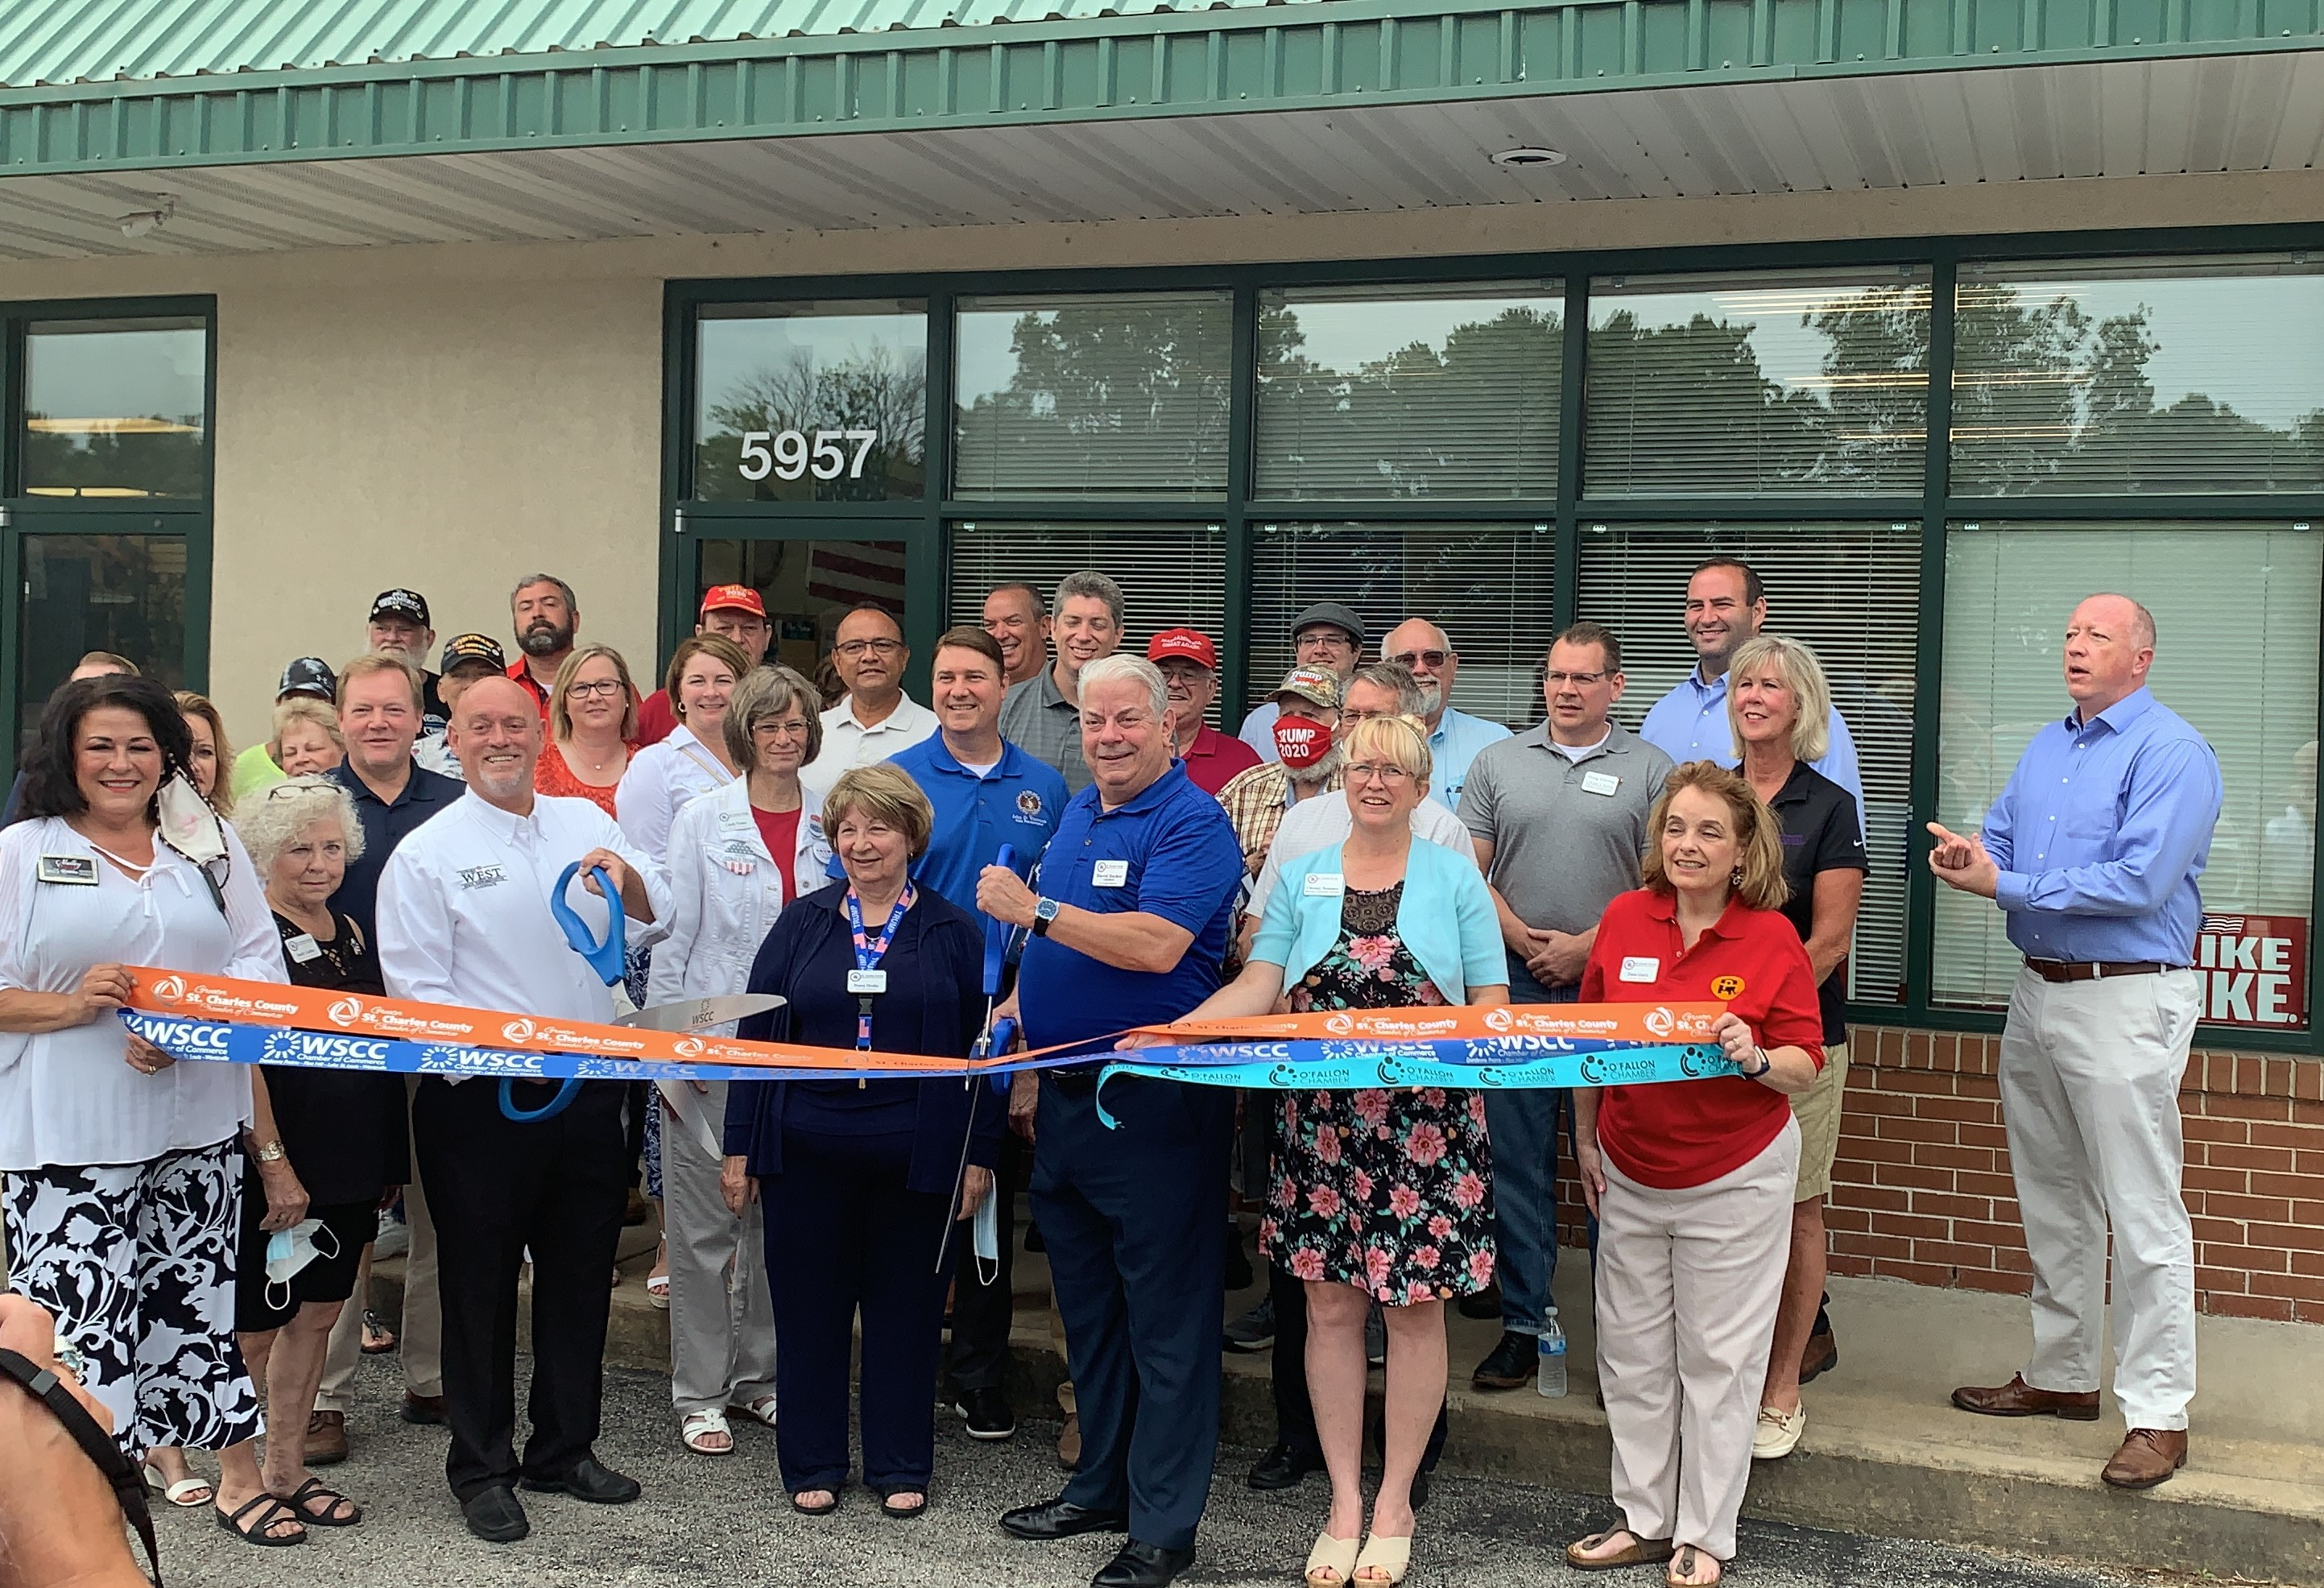 St. Charles County Republican Central Committee Celebrates New Office with Ribbon Cutting